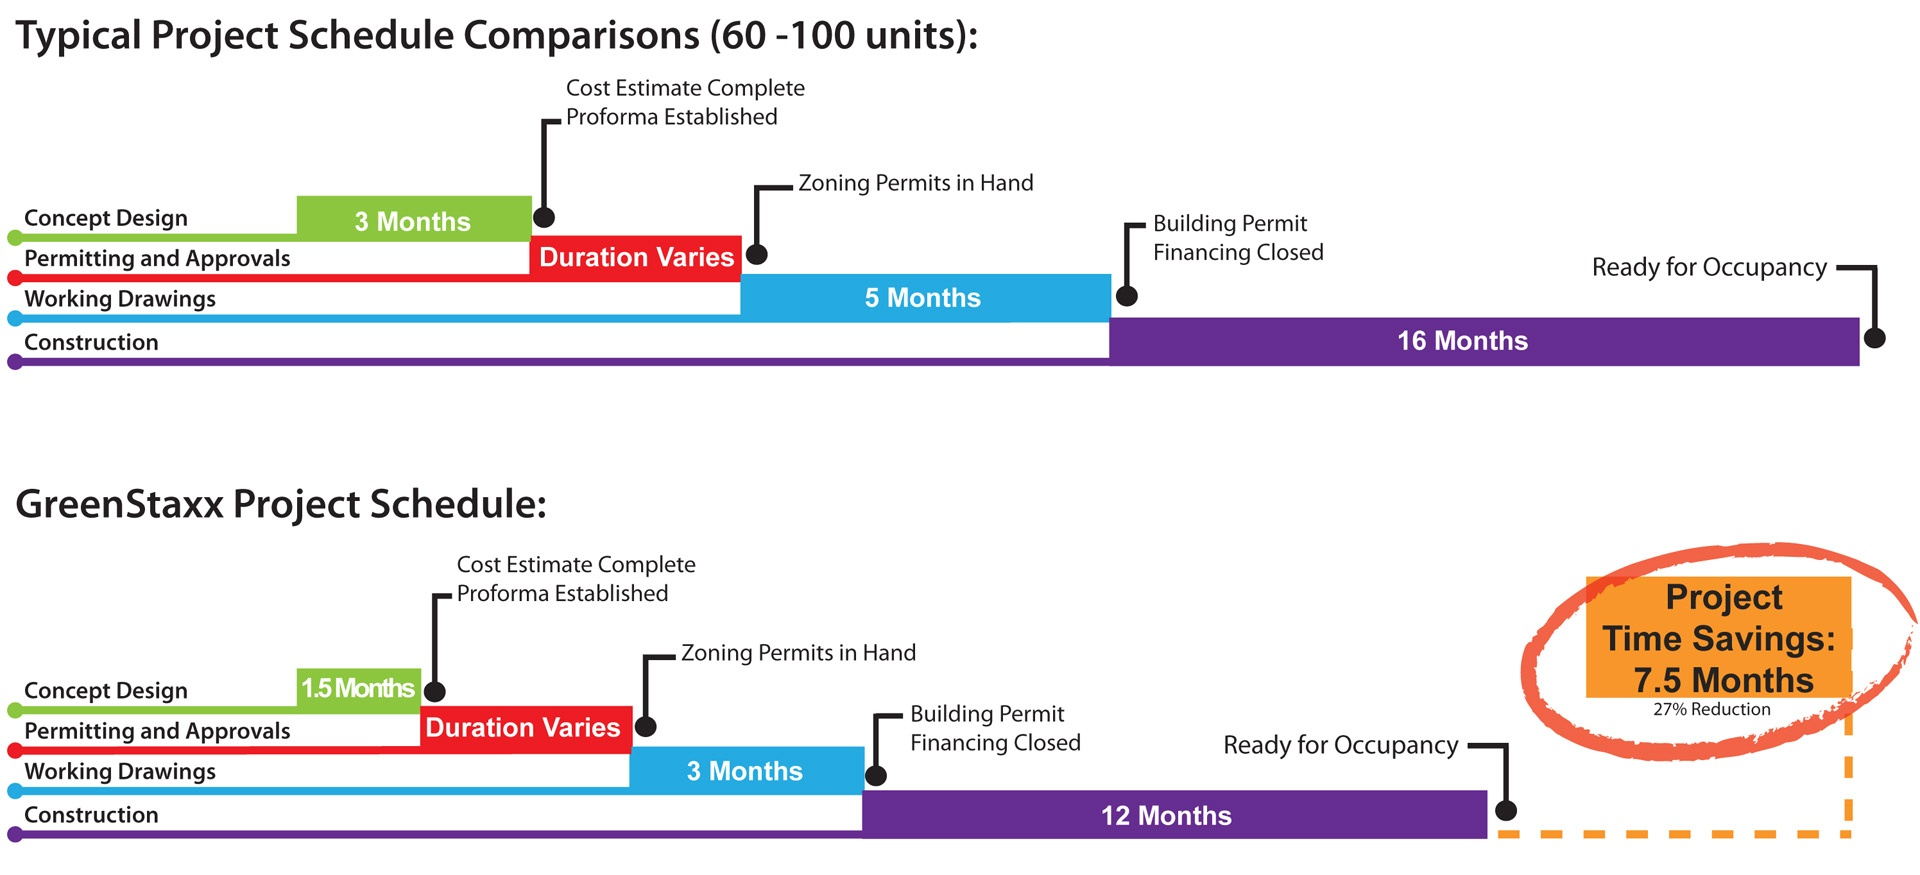 Typical Project Schedule Comparisons